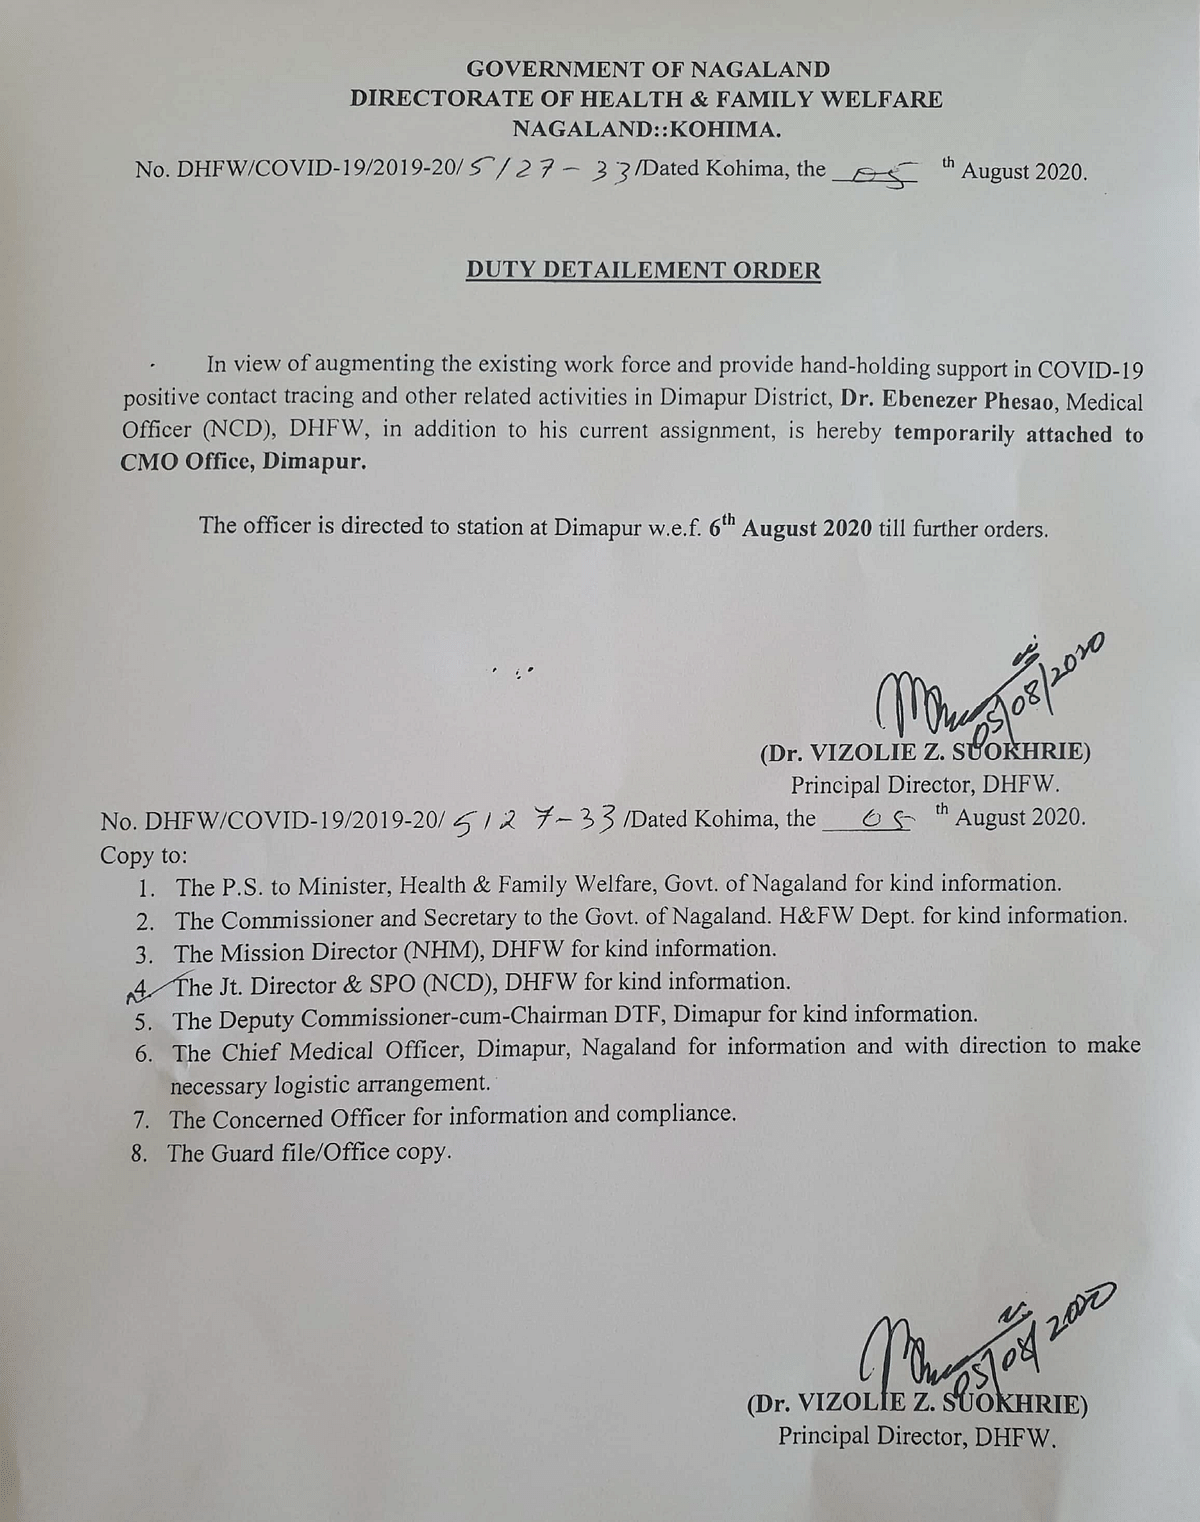 The duty detailment order that was issued by the Department of Heath and Family Welfare Nagaland on August 5